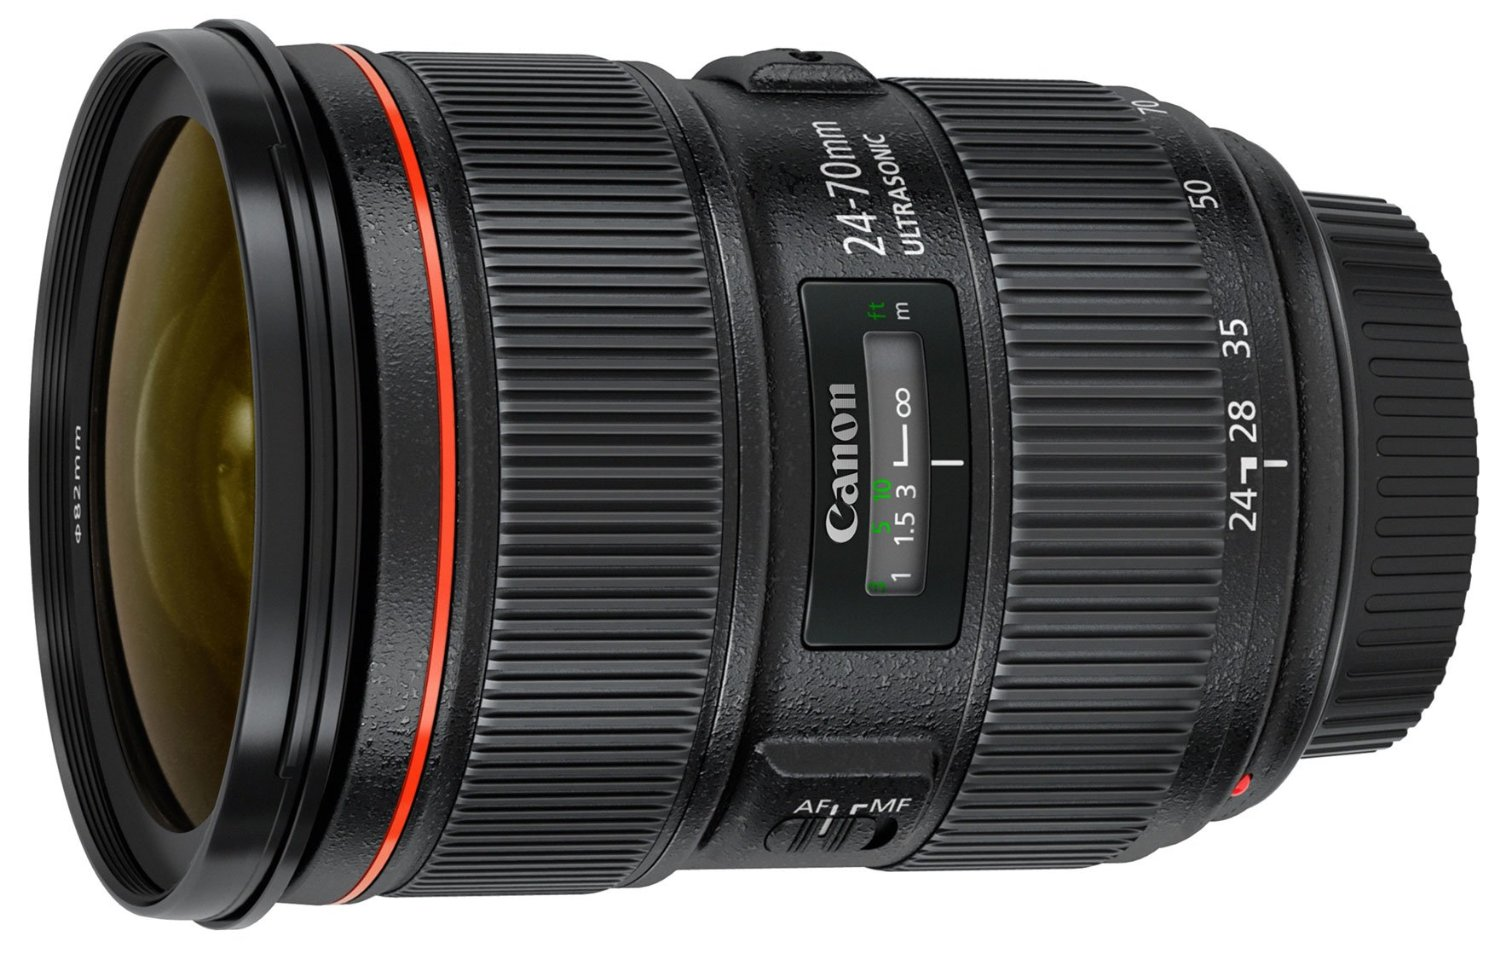 Copy of Canon EF 24-70mm f/2.8L II